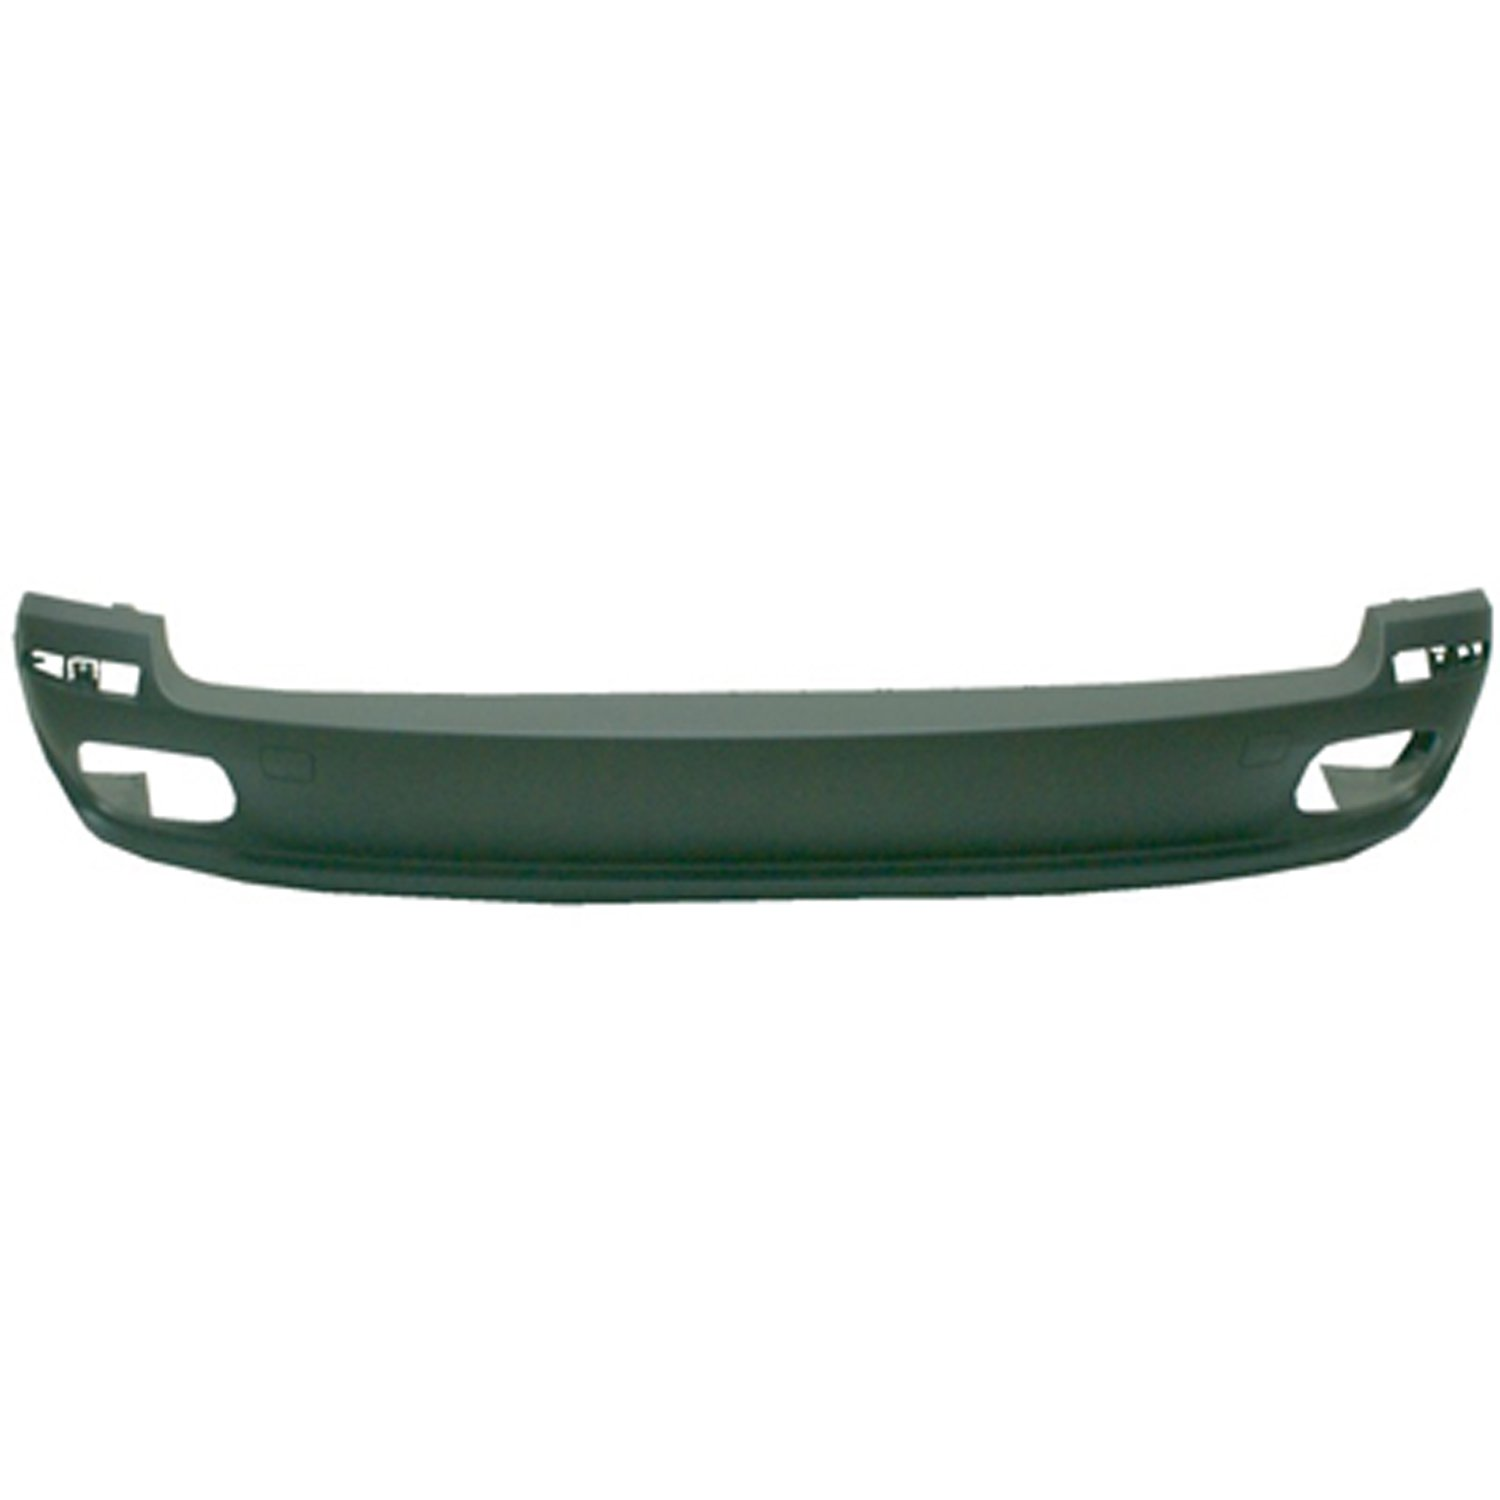 NEW REAR BUMPER COVER FOR 2007-2010 BMW X5 BM1100174